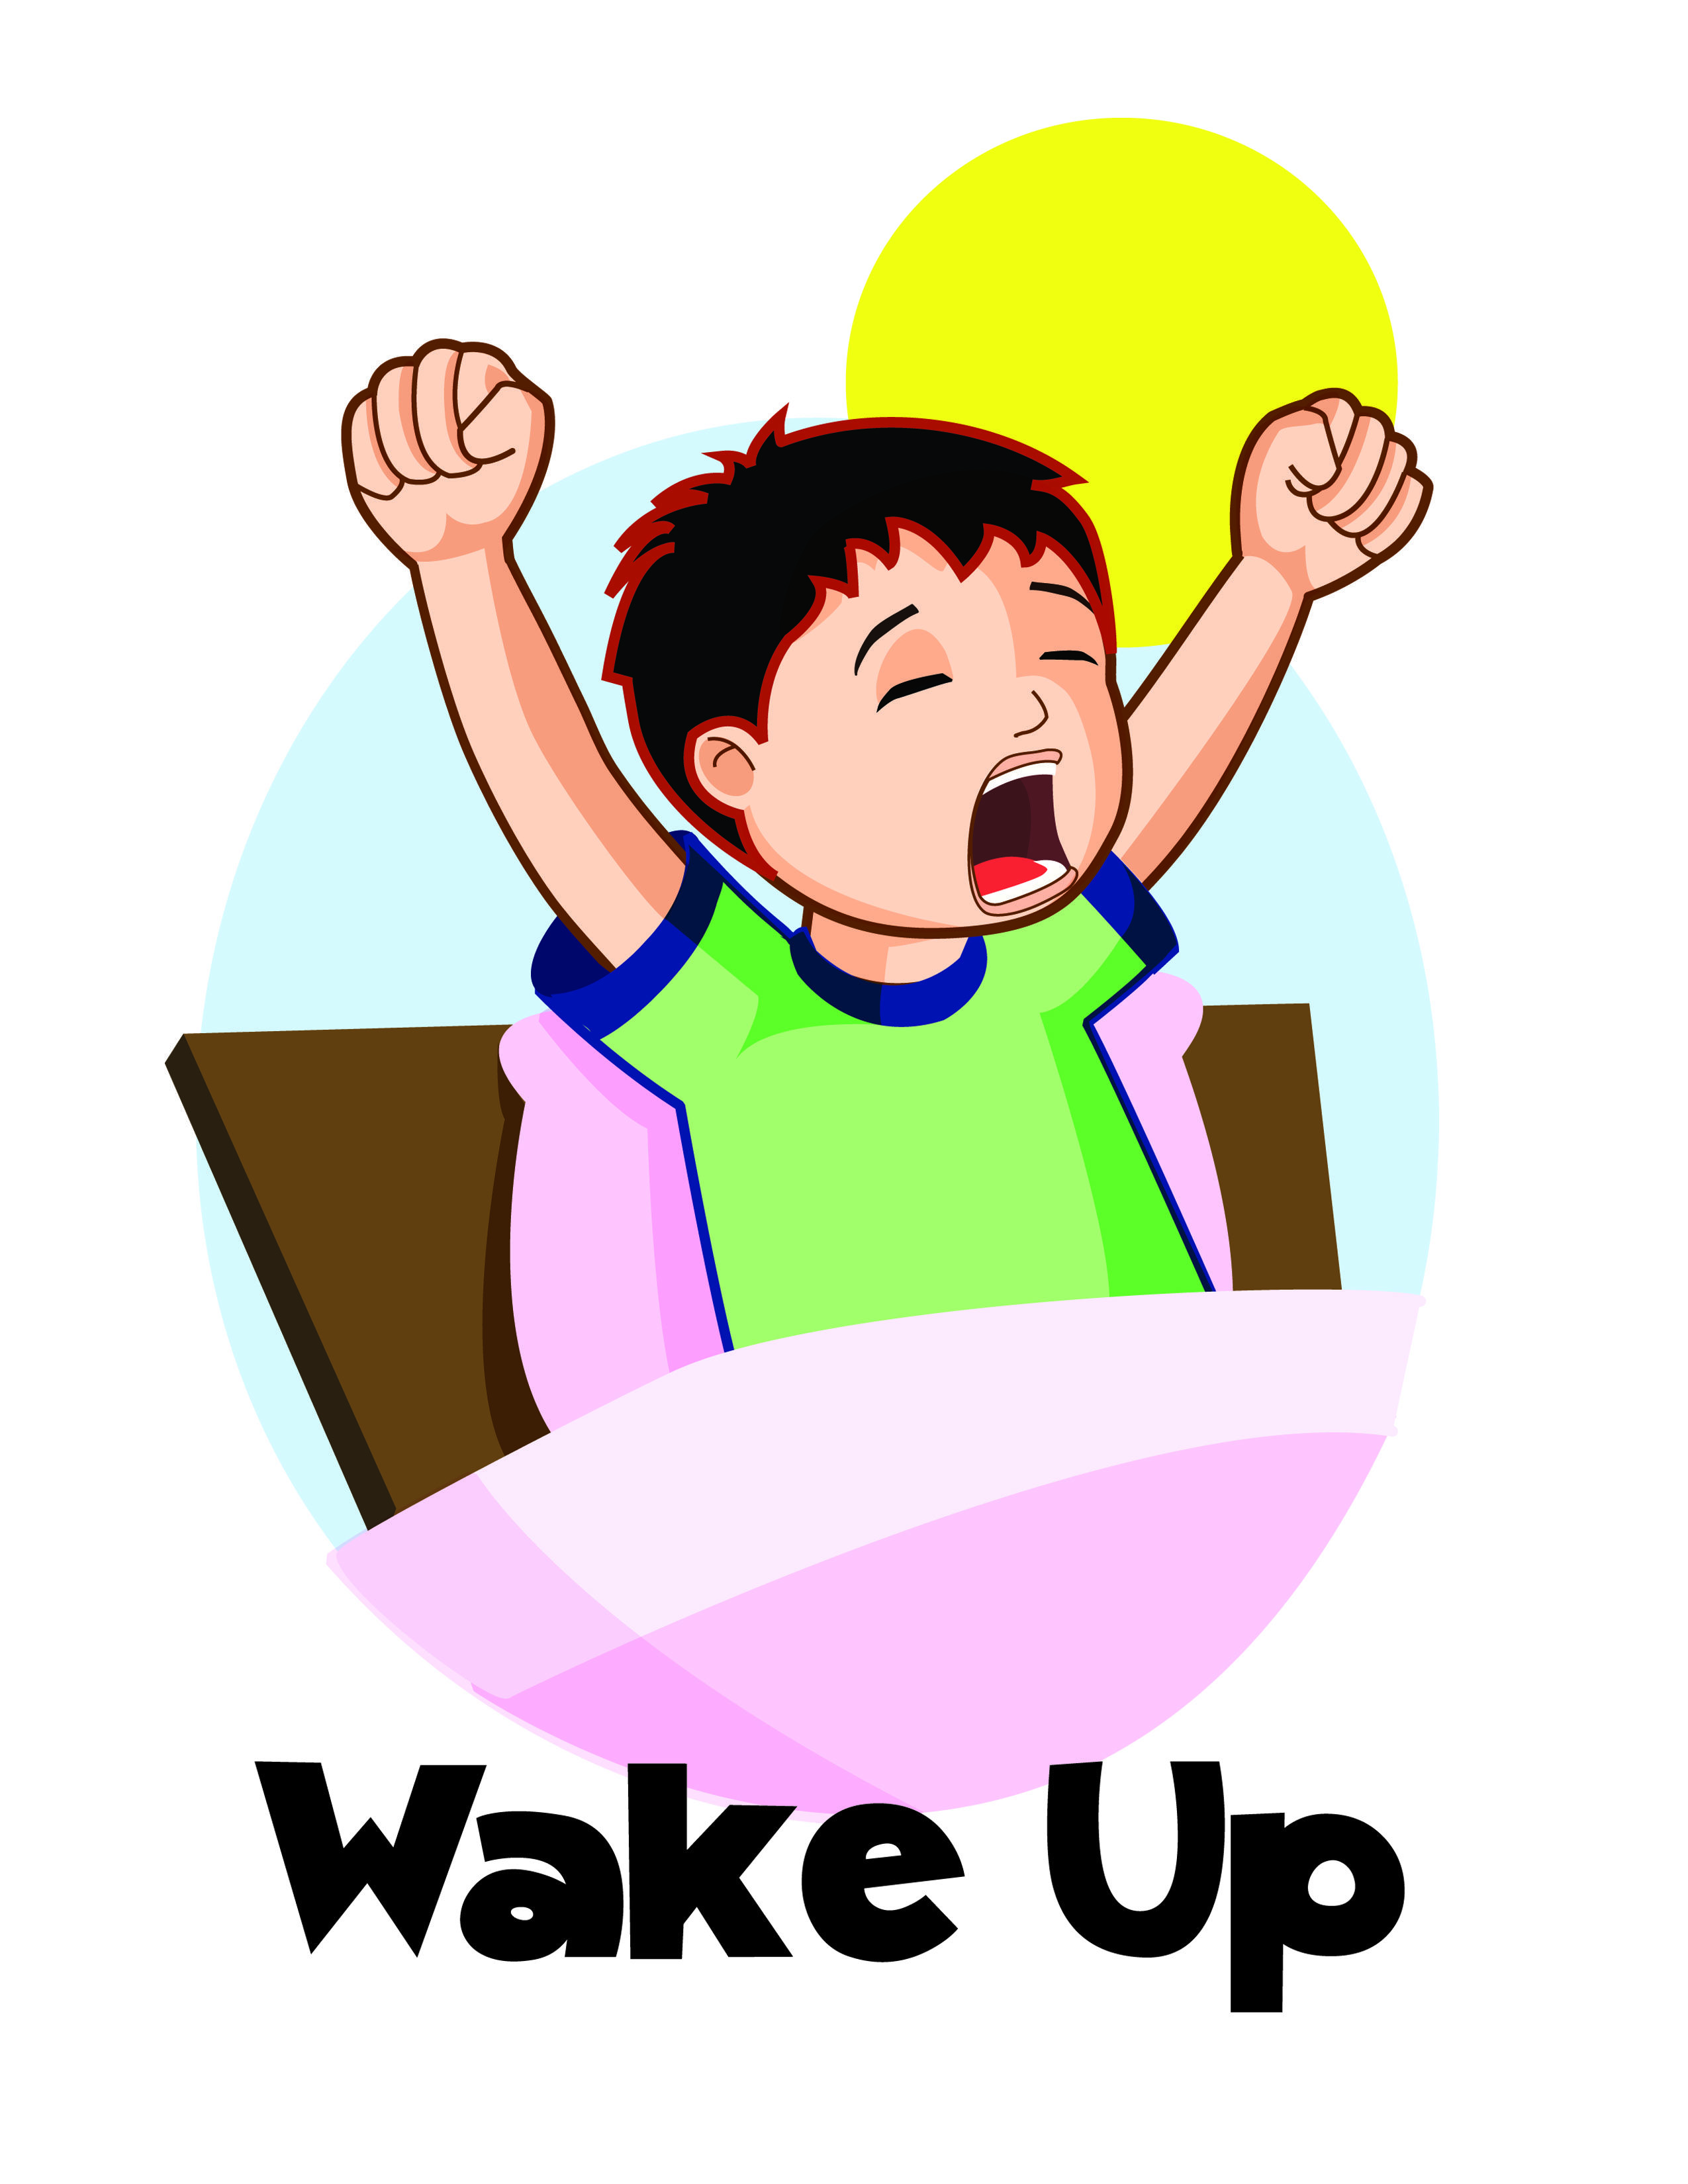 hight resolution of 11 wake up clip art free cliparts that you can download to you